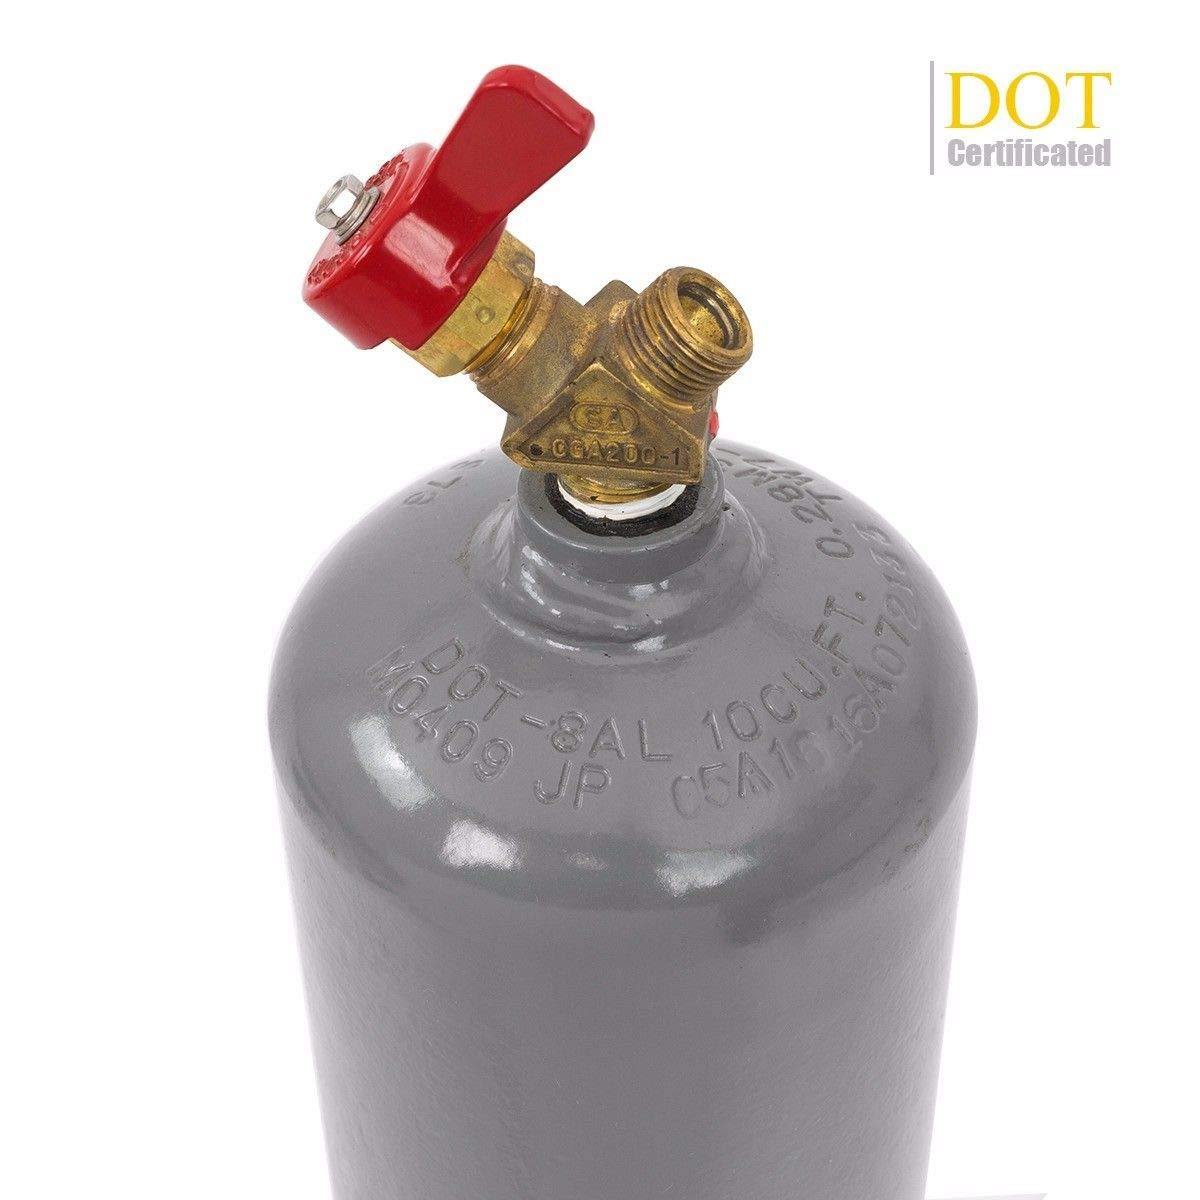 STKUSA Professional Torch Kit Tote Oxygen /& Acetylene Tanks Welding Cutting Regulator w//Carrying Stand DOT Approved